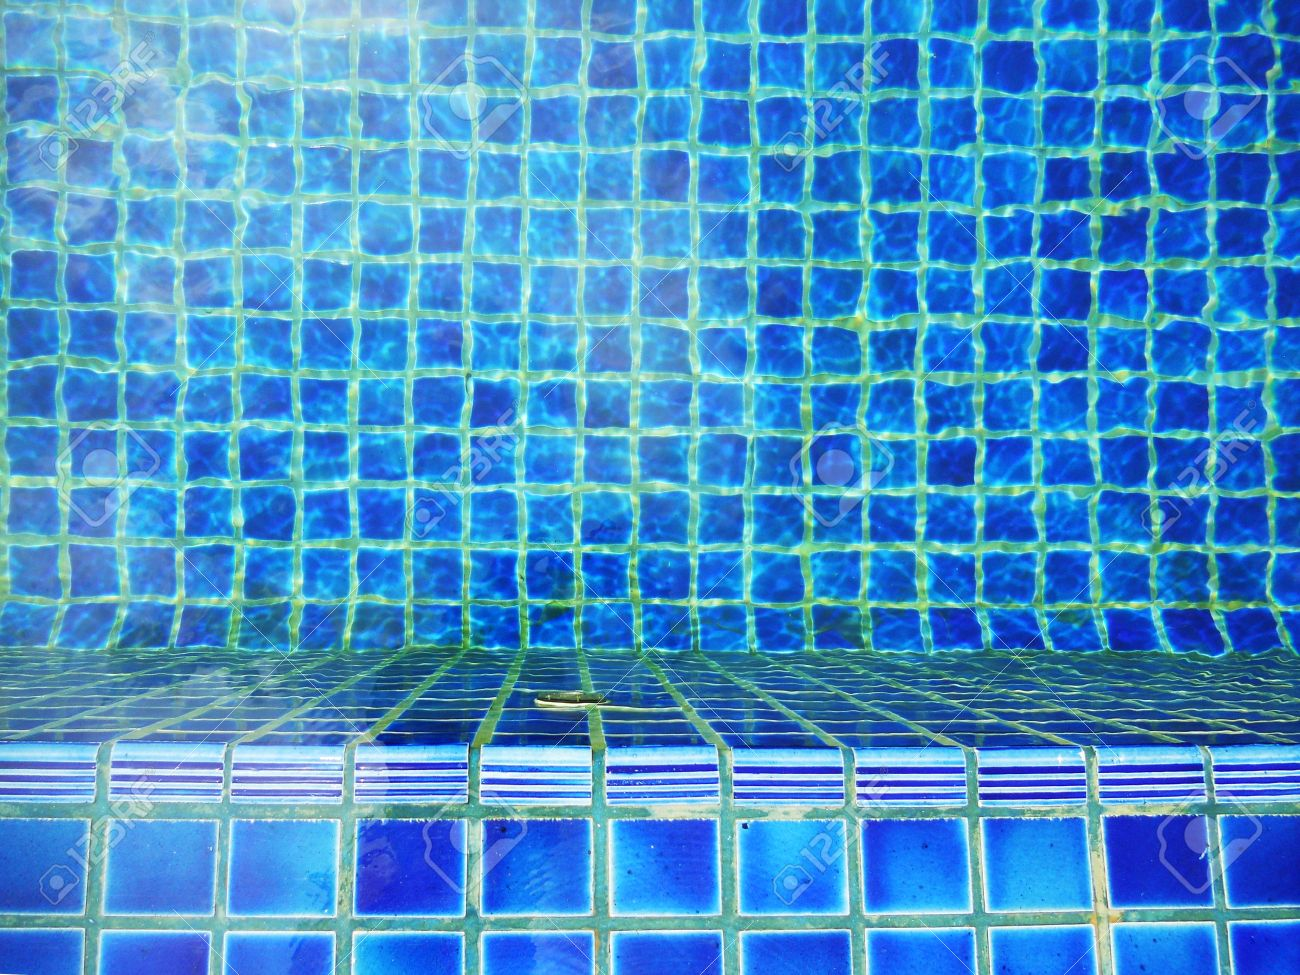 Swimming Pool Tiles, Hand-made Blue Ceramic Tiles In An Outdoor ...